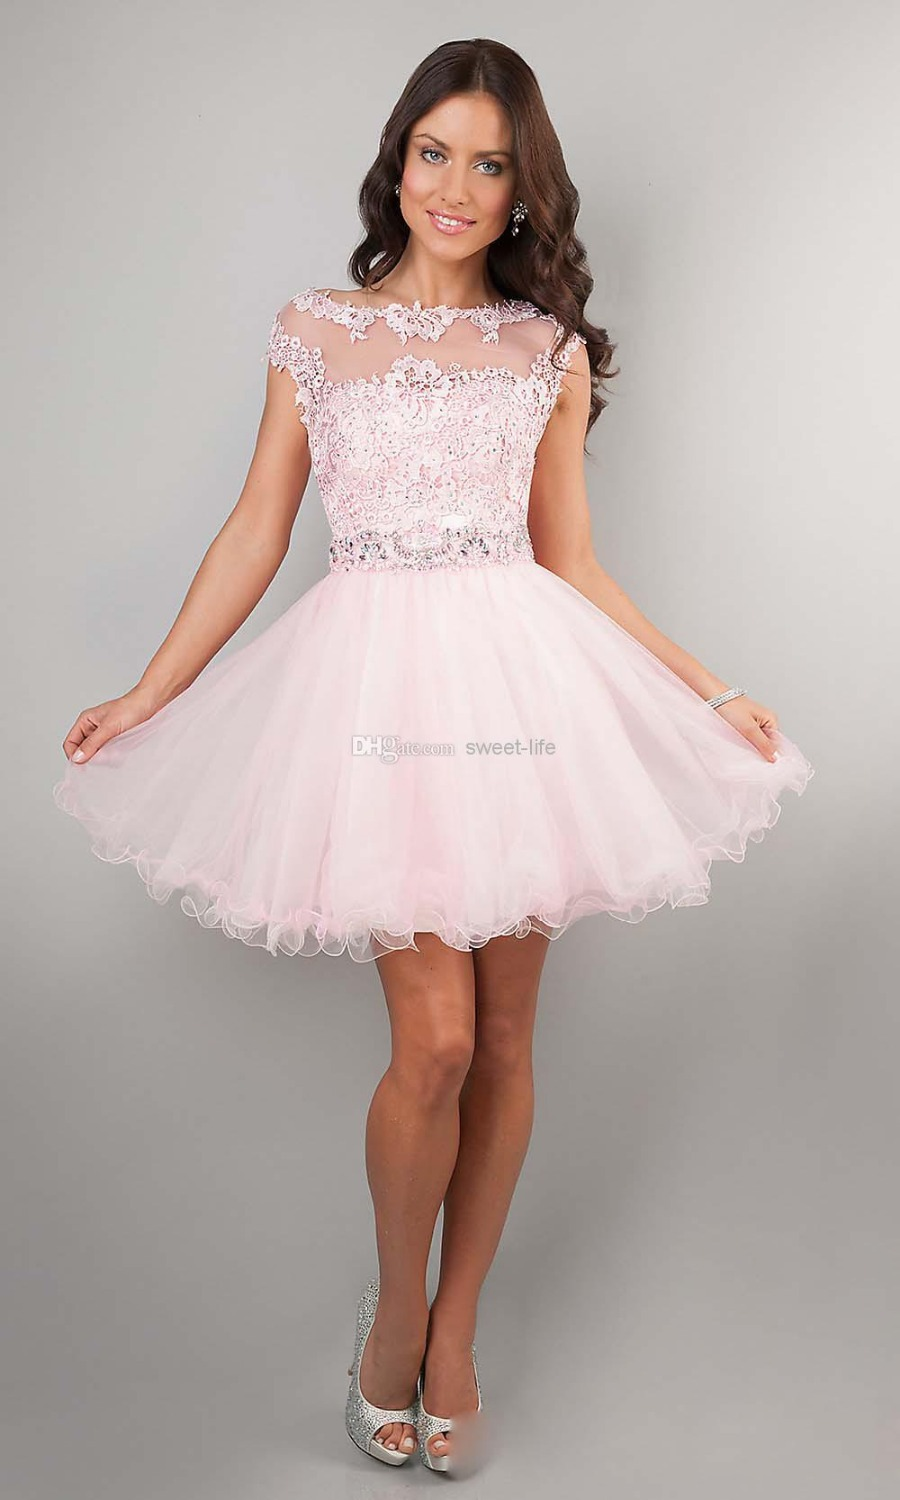 Cute Short Prom Dresses Pink High Neck Beaded Applique See Through Cheap Junior Girls Graduation Dresses Party Dresses -in Prom Dresses from Apparel & Accessories on Aliexpress.com | Alibaba Group